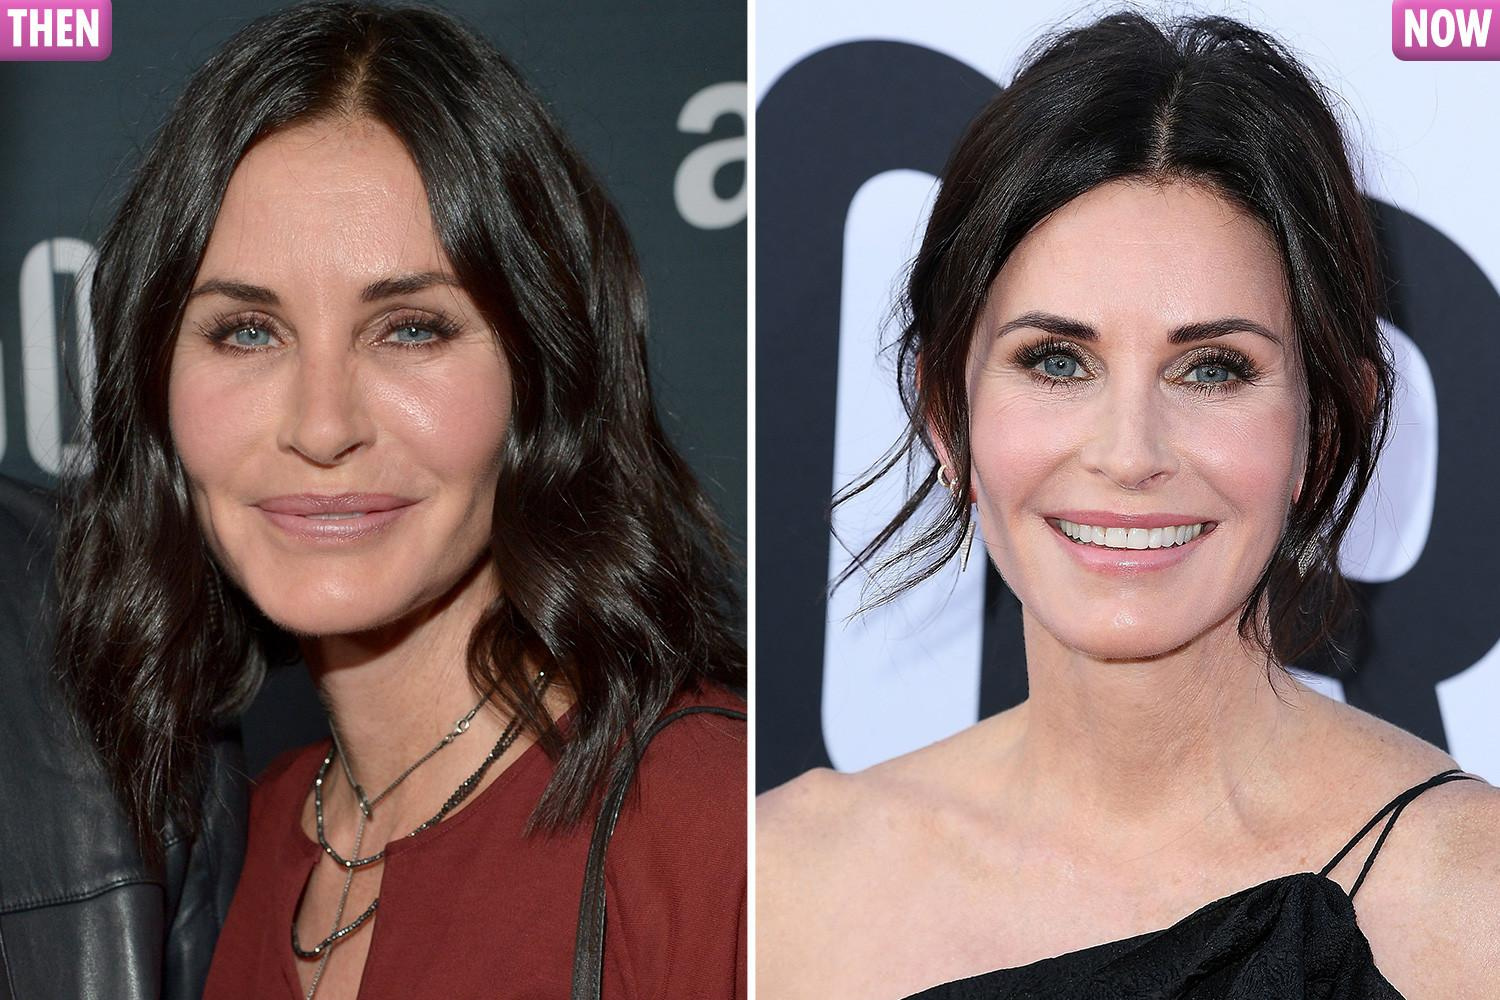 Courteney Cox says: 'I've had all my fillers dissolved. I'm as natural as can be'